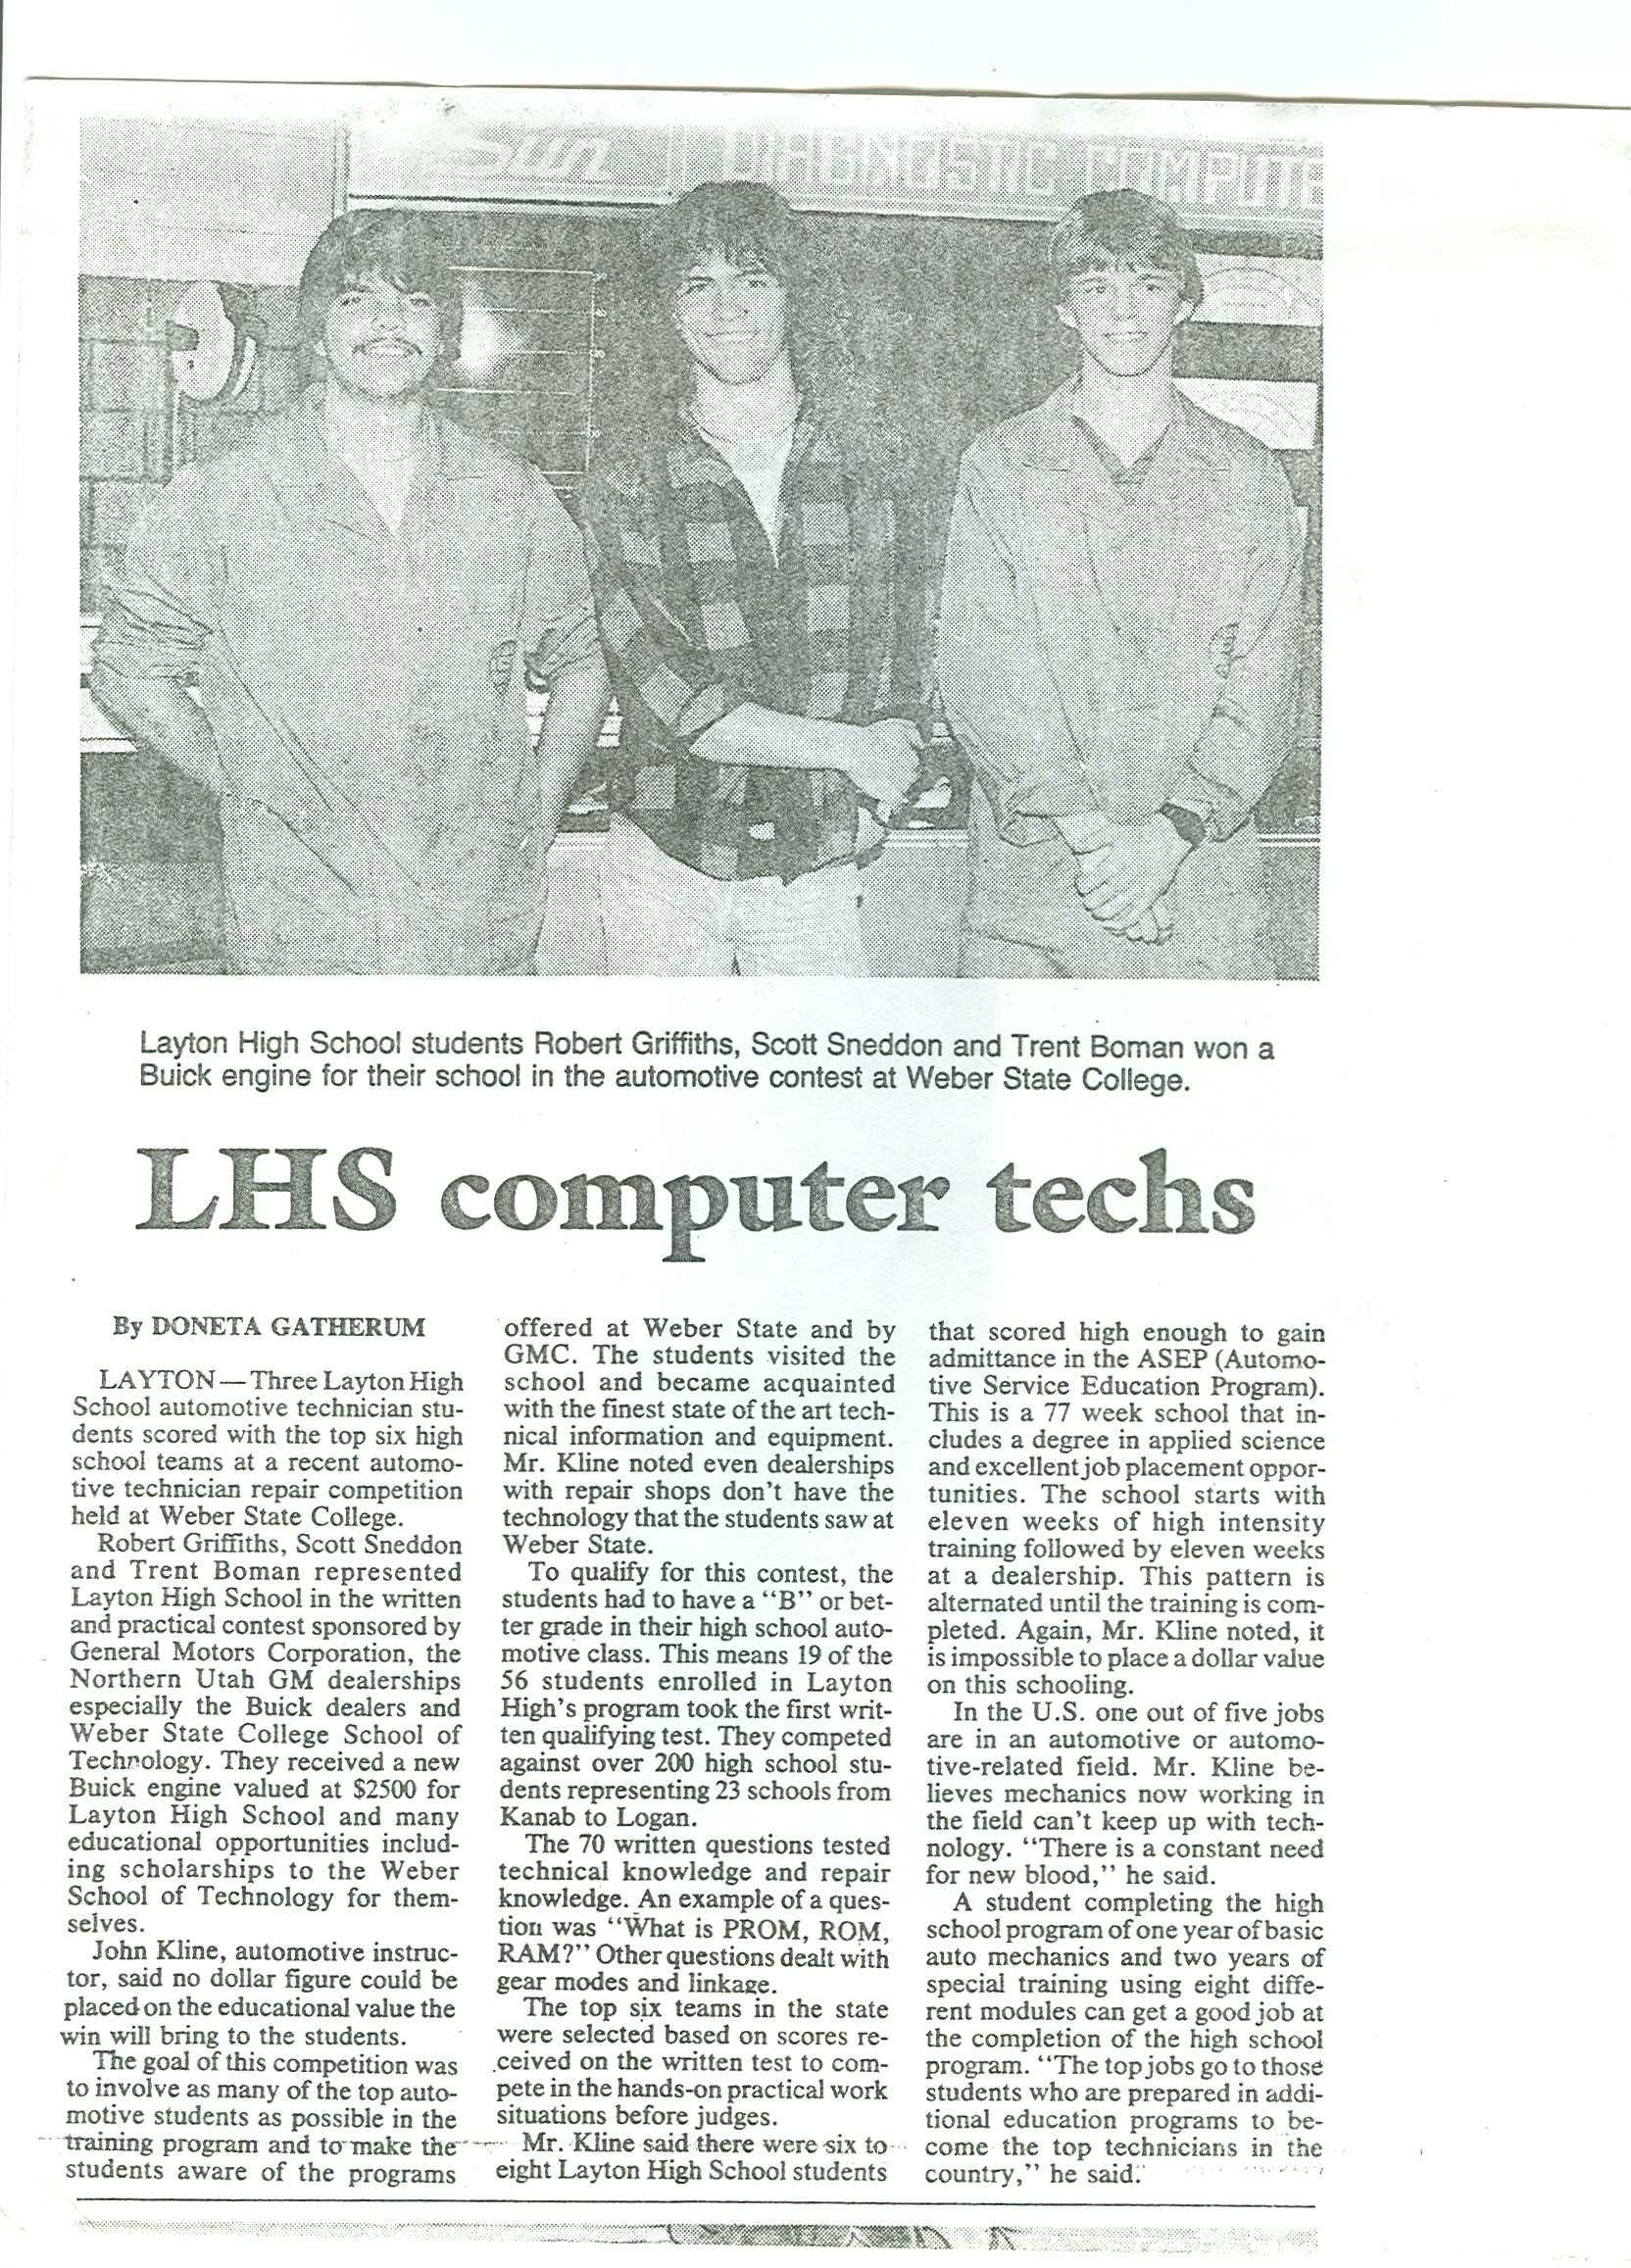 LHS computer techs newspaper article